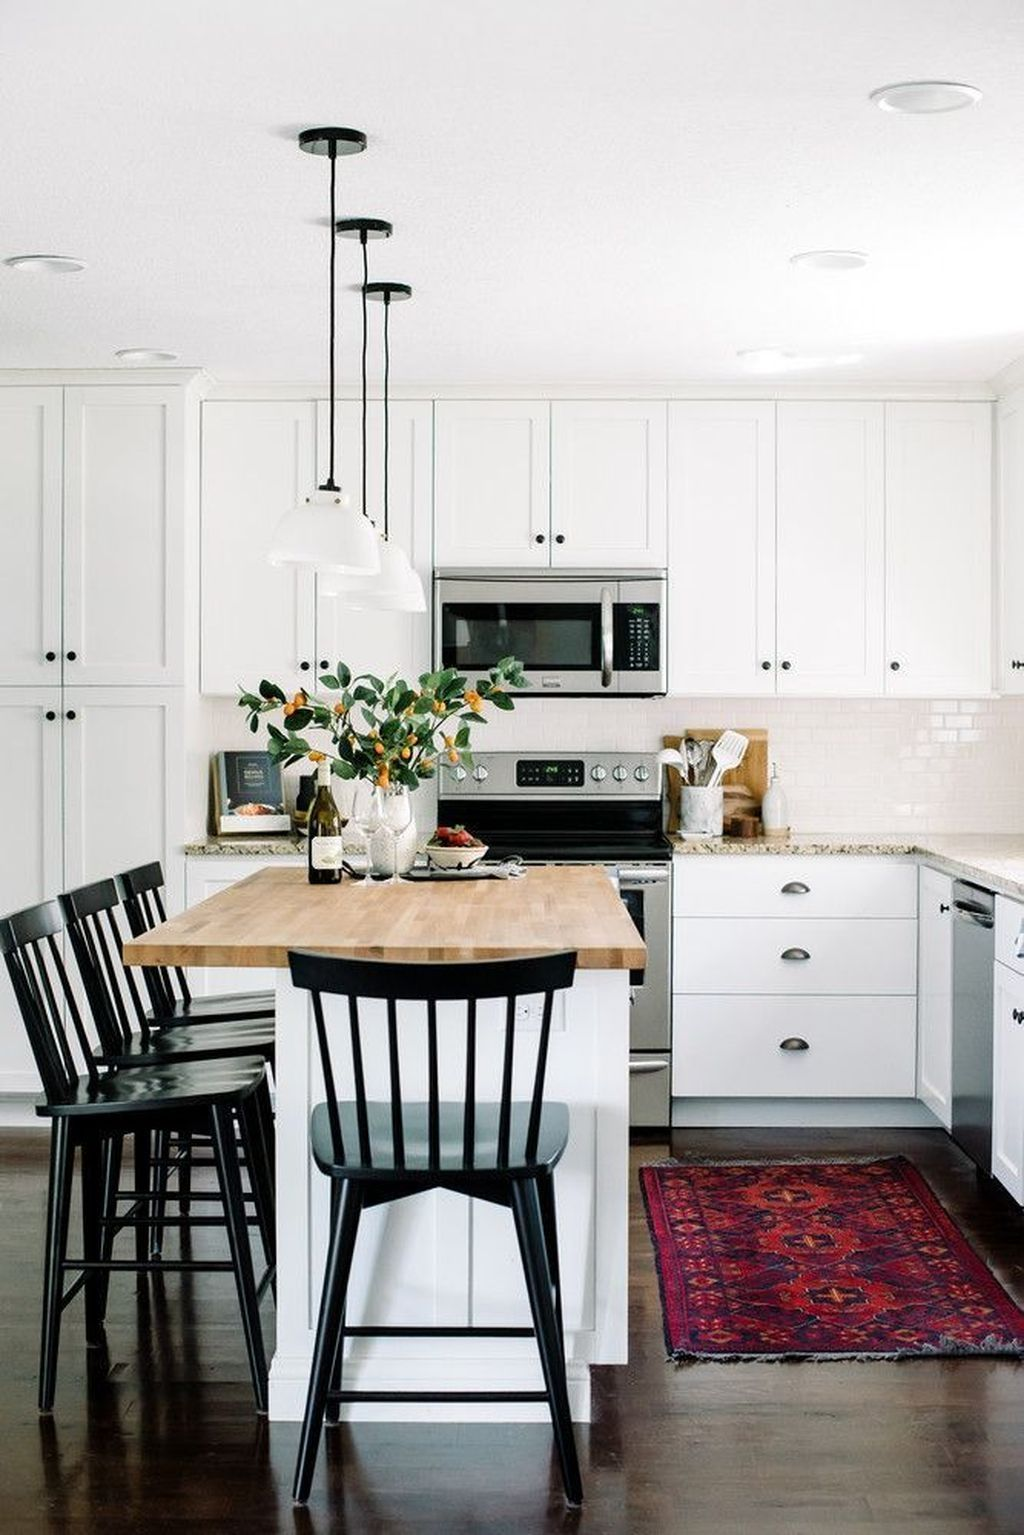 88 Amazing Black and White Kitchen Ideas You Will Love | Kitchens ...